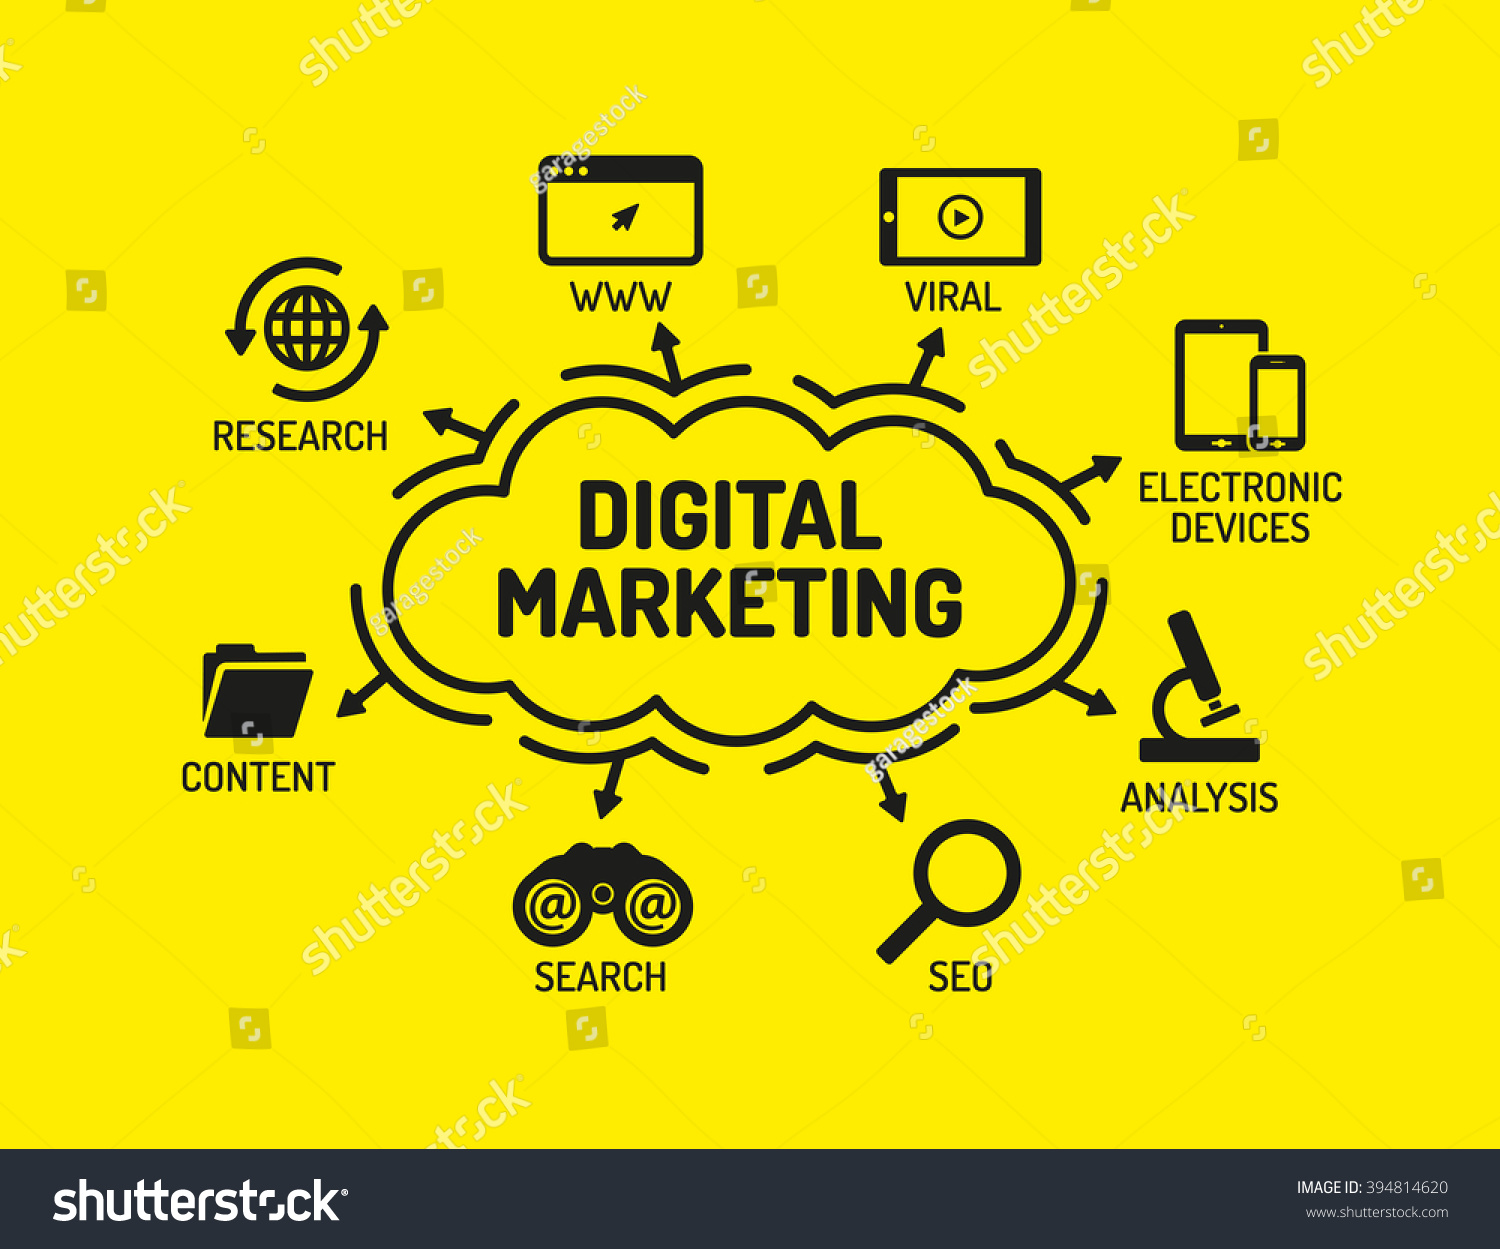 How to use Digital marketing Increase sales lead